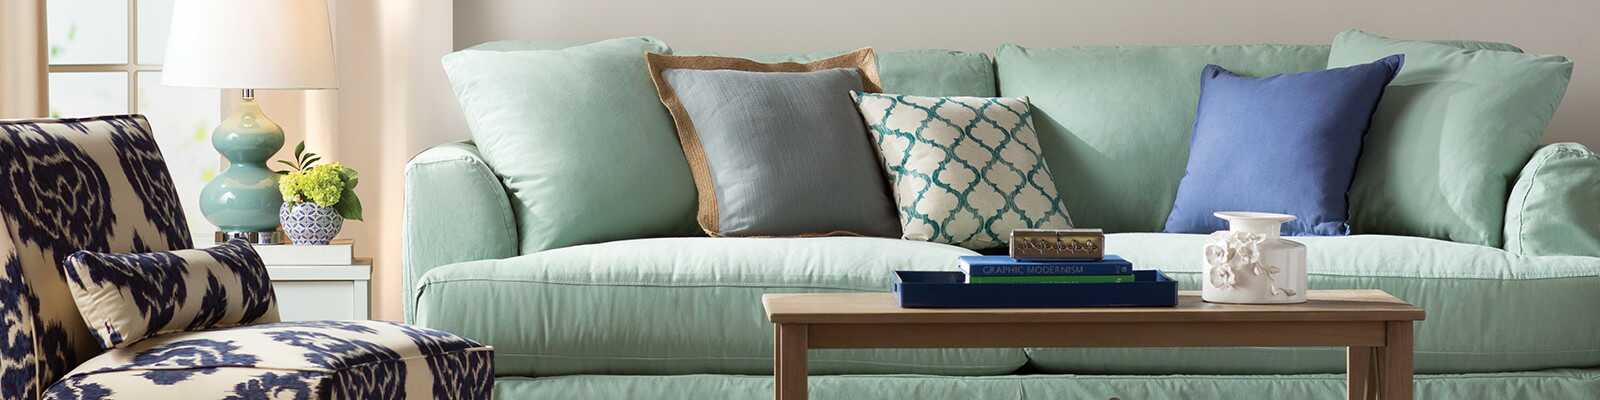 Furniture And Home Decor Part - 28: Letu0027s Make Home Your Happy Place. Find Furniture, Décor ...